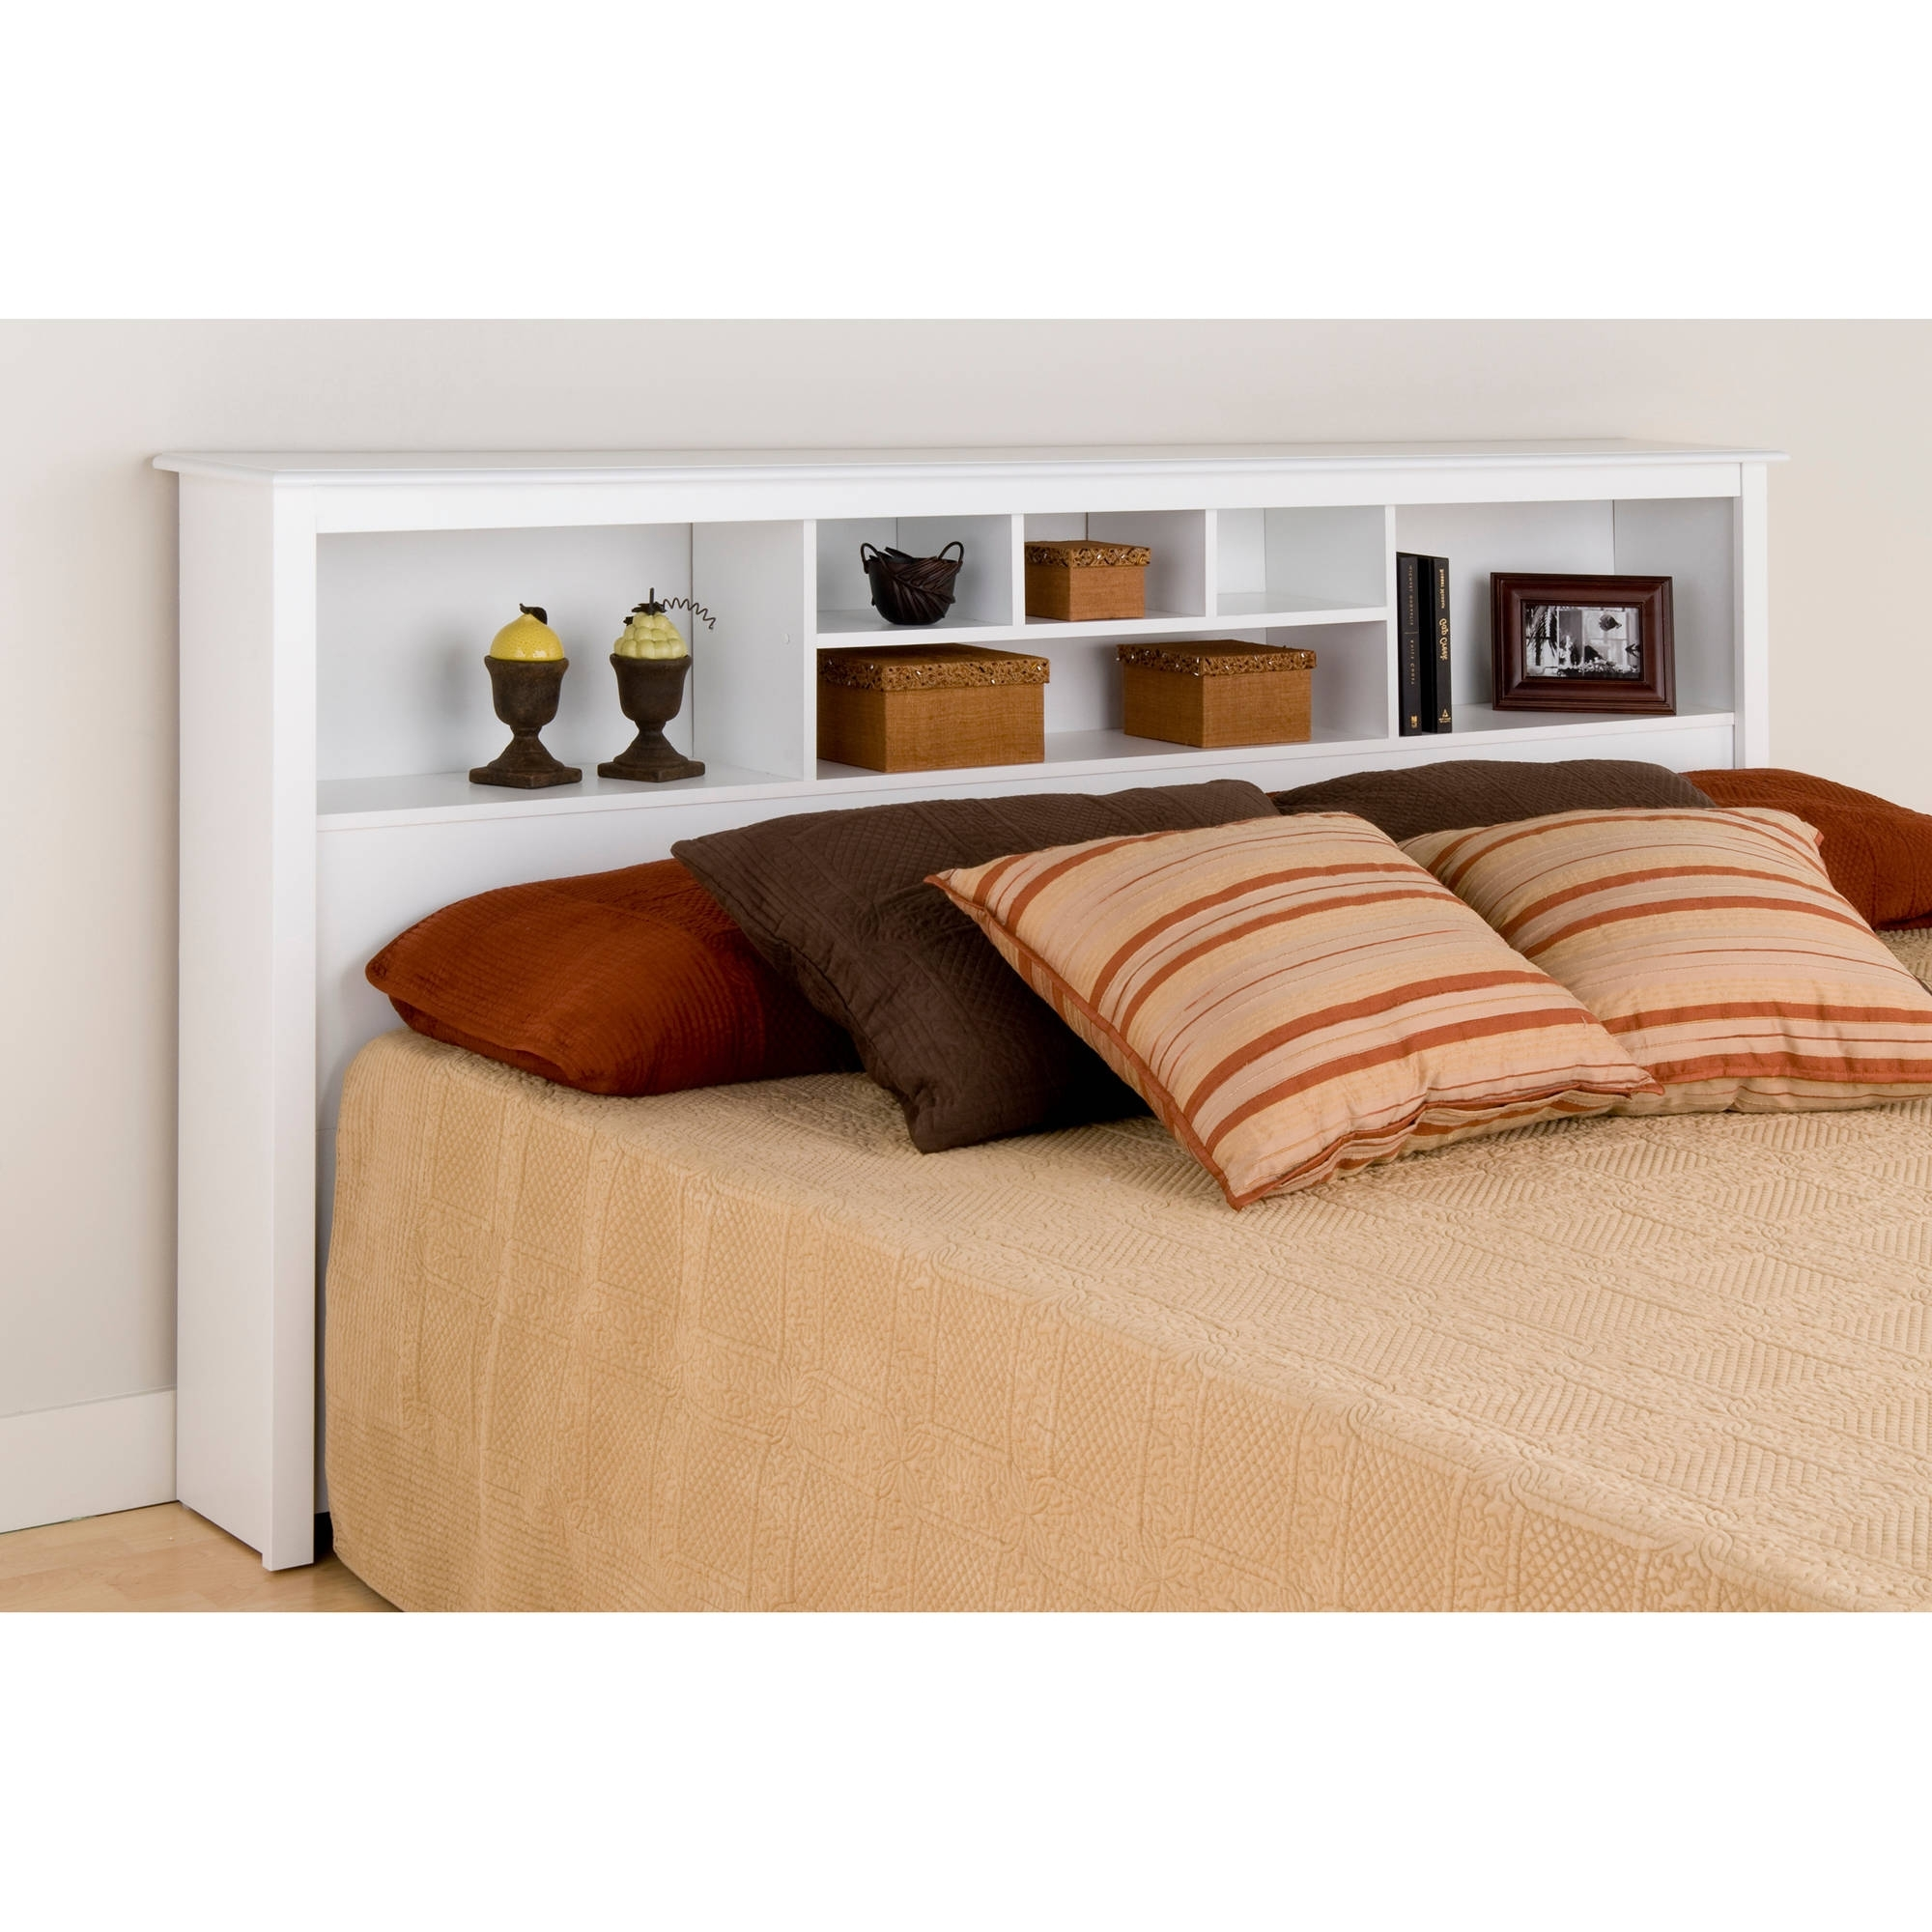 Recent Prepac Manufacturing King Size Bookcase Headboard – Walmart Intended For Bookcases Headboard (View 6 of 15)